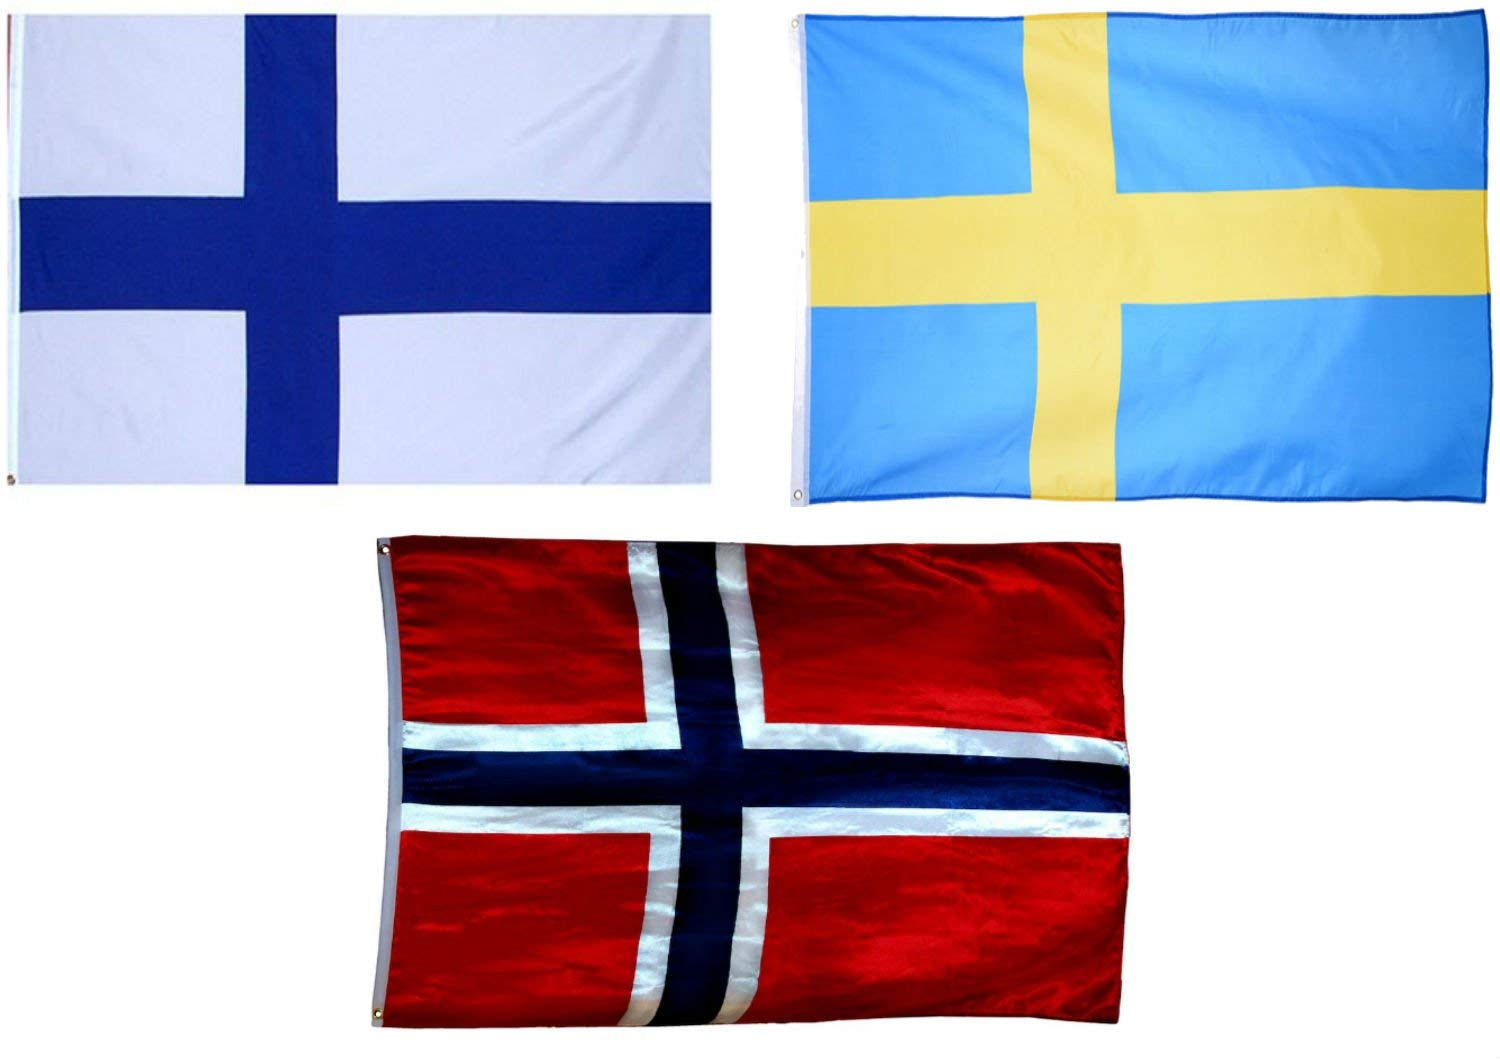 Wholesale Combo (3) Three Scandinavian Friendship 3x5 3'x5' Wholesale Combo Set Finland & Norway & Sweden Flags Brass Grommets Double Stitching UV Resistant.